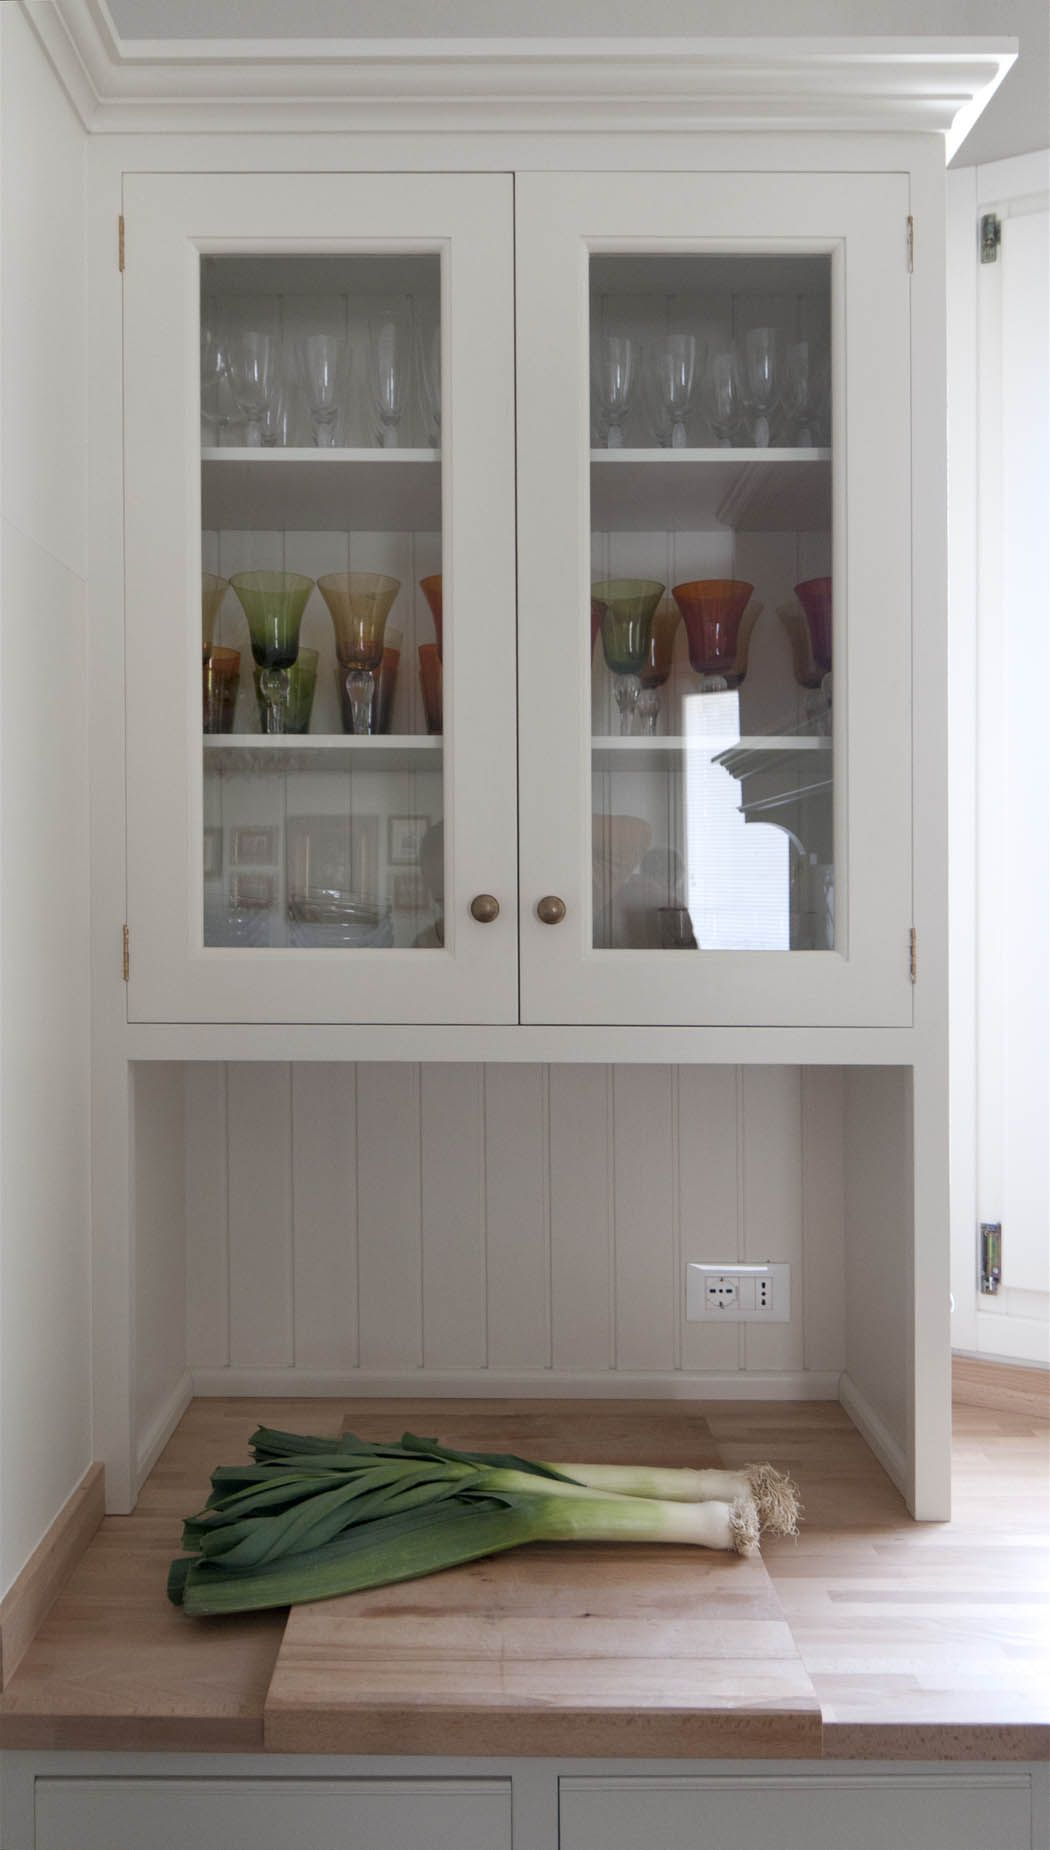 Cucina A Gas Stile Country Monticello Kitchen By Homewood Bespoke: La Classica Cucina